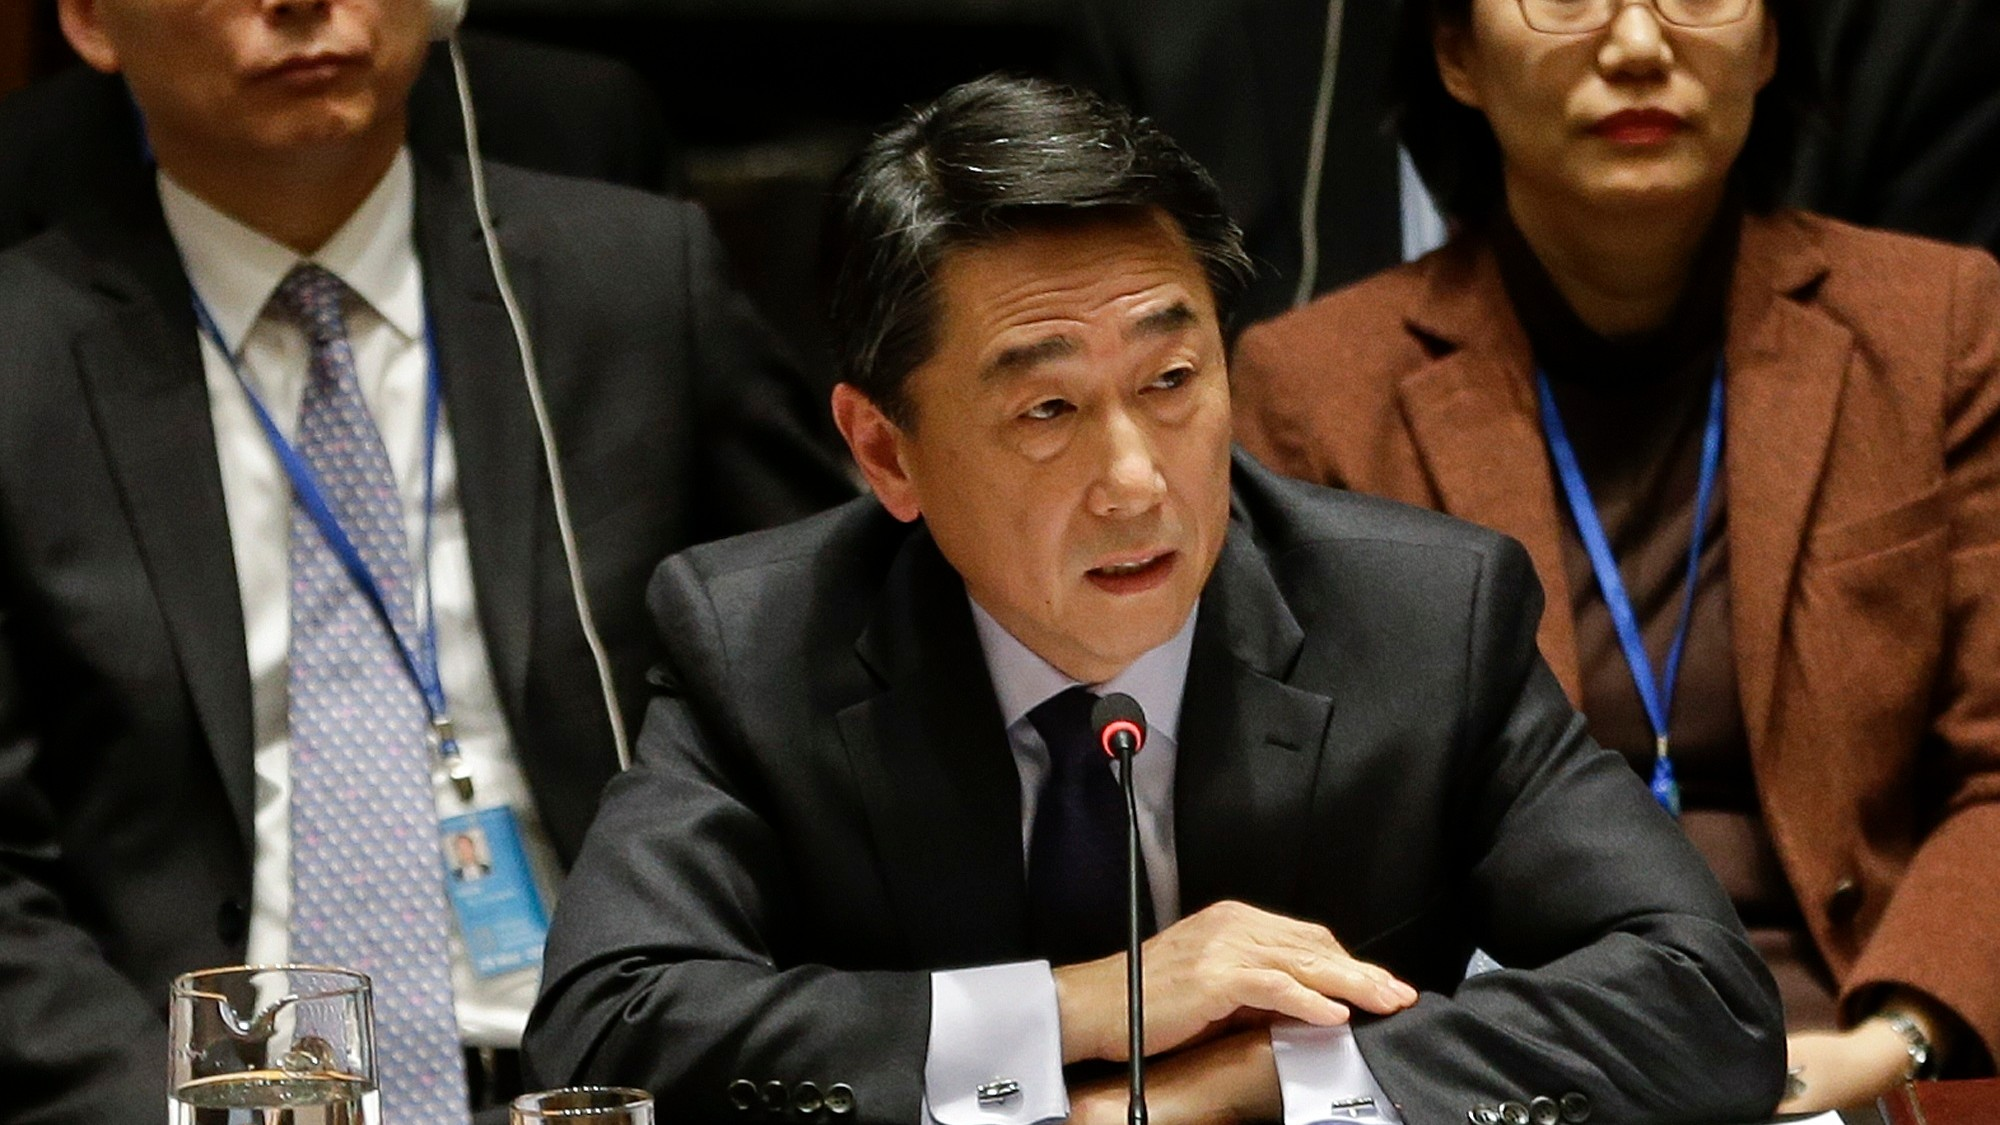 UN Security Council Holds Unprecedented Hearing on Human Rights in North Korea